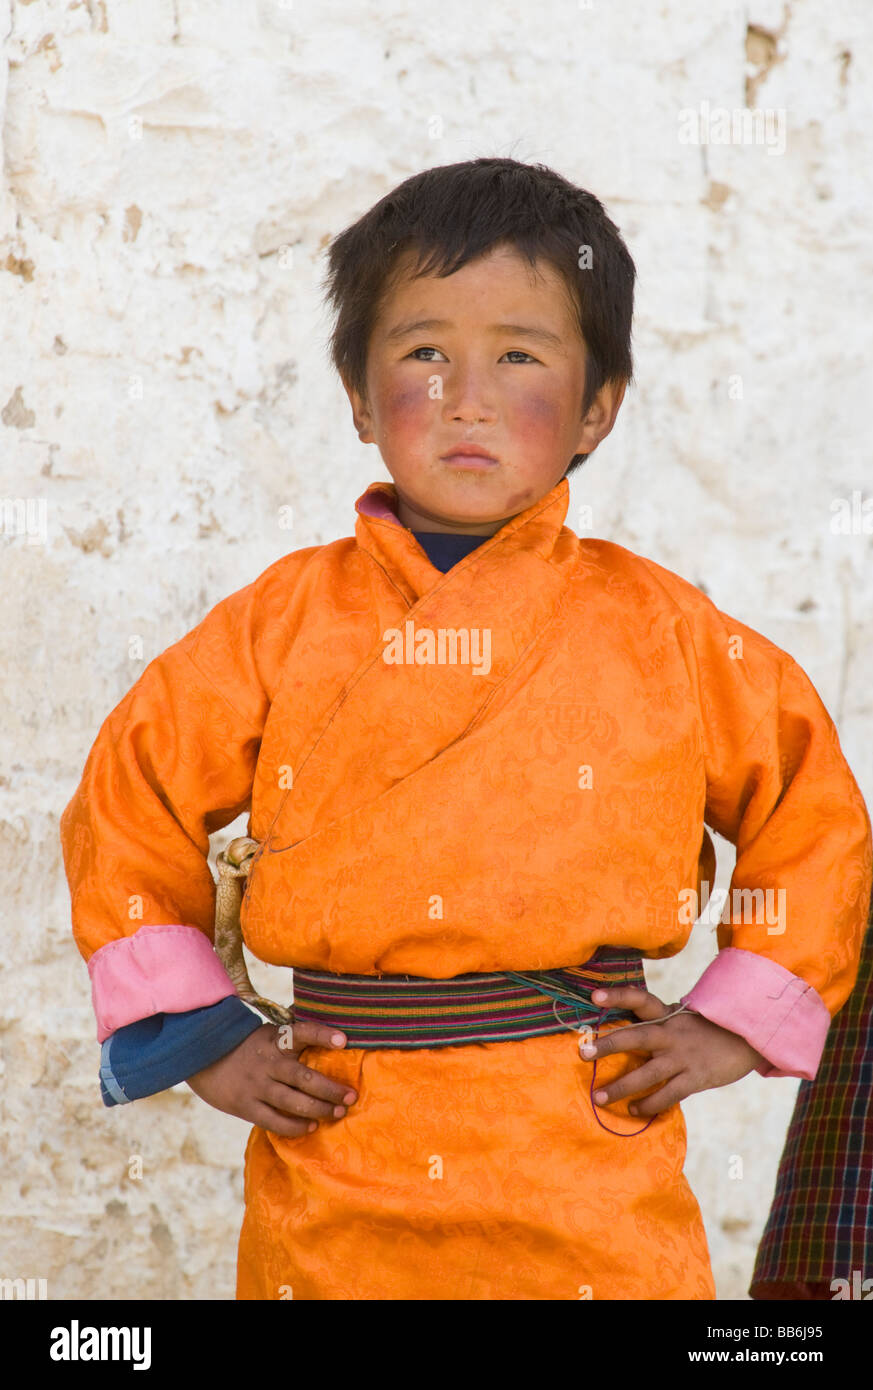 Young Boy wearing orange 'gho' at tsechu or festival, Ura, Bumthang Valley, BHUTAN - Stock Image